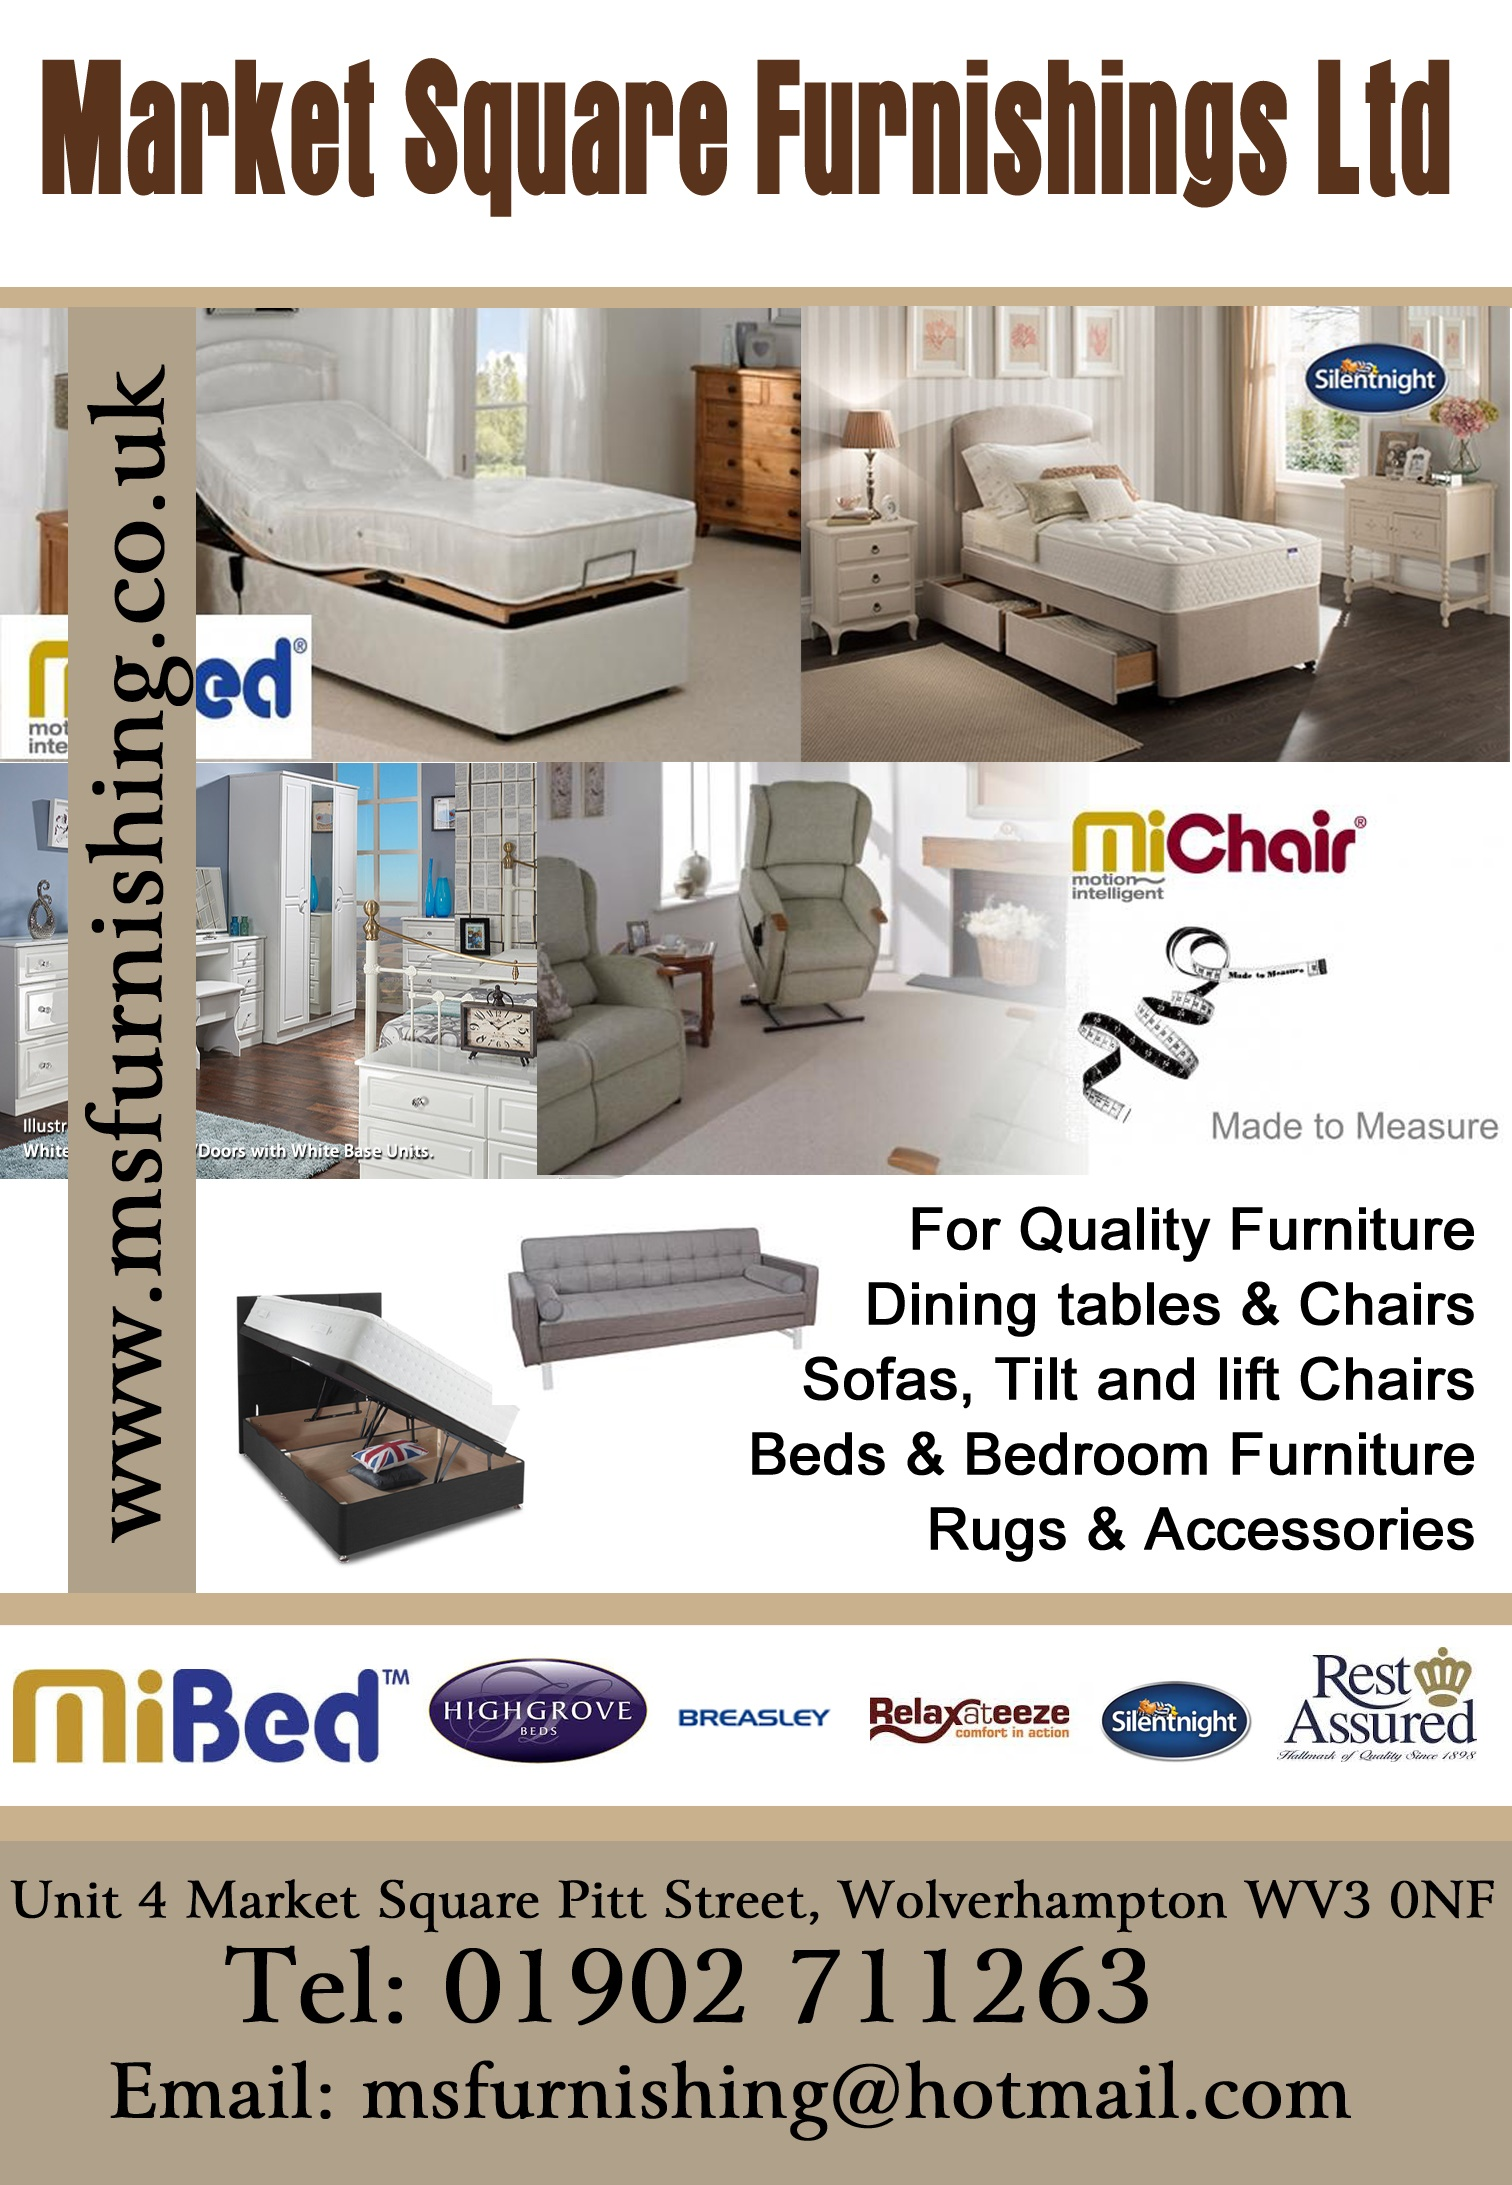 quality sofas midlands ltd measurements of a double sofa bed market square furnishings asian directory